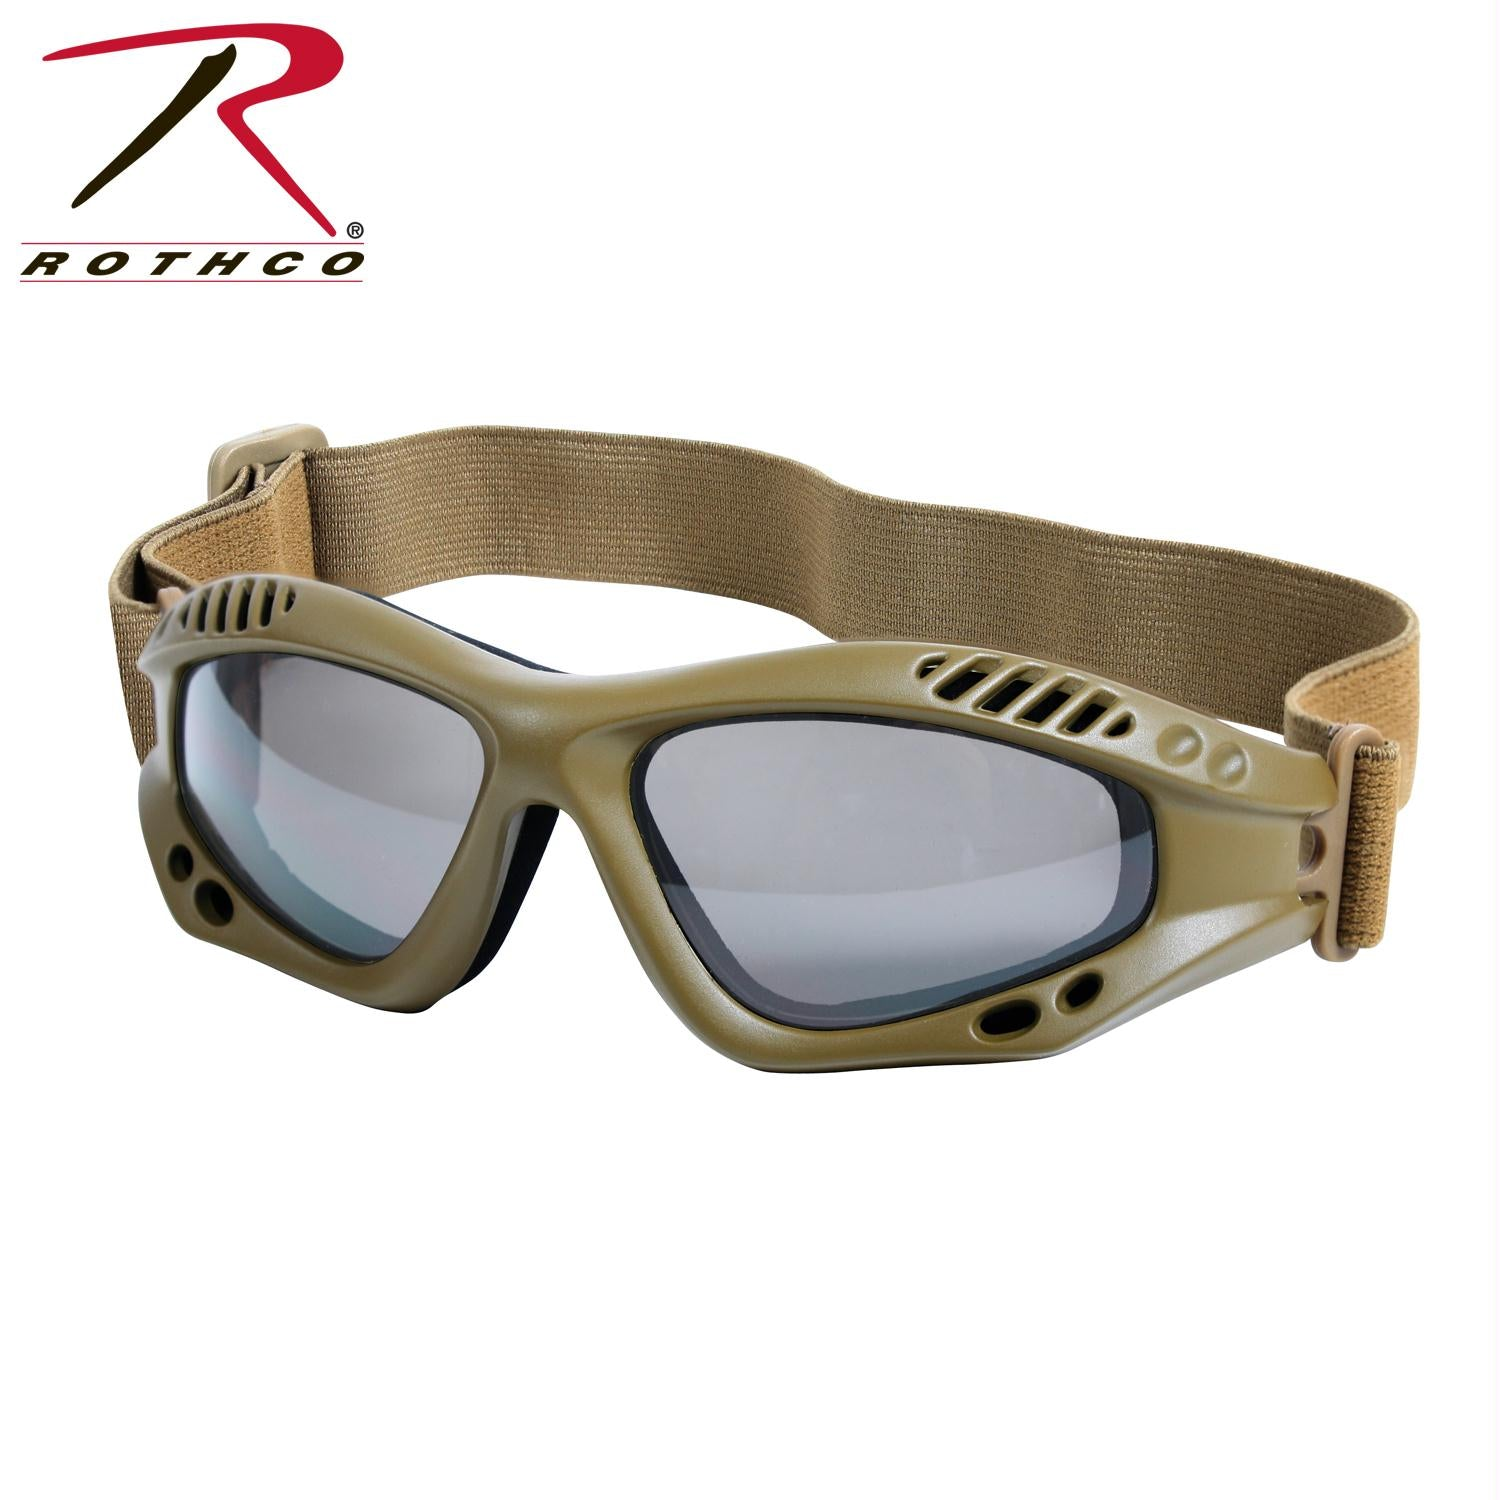 Rothco Ventec Tactical Goggles - Coyote Brown